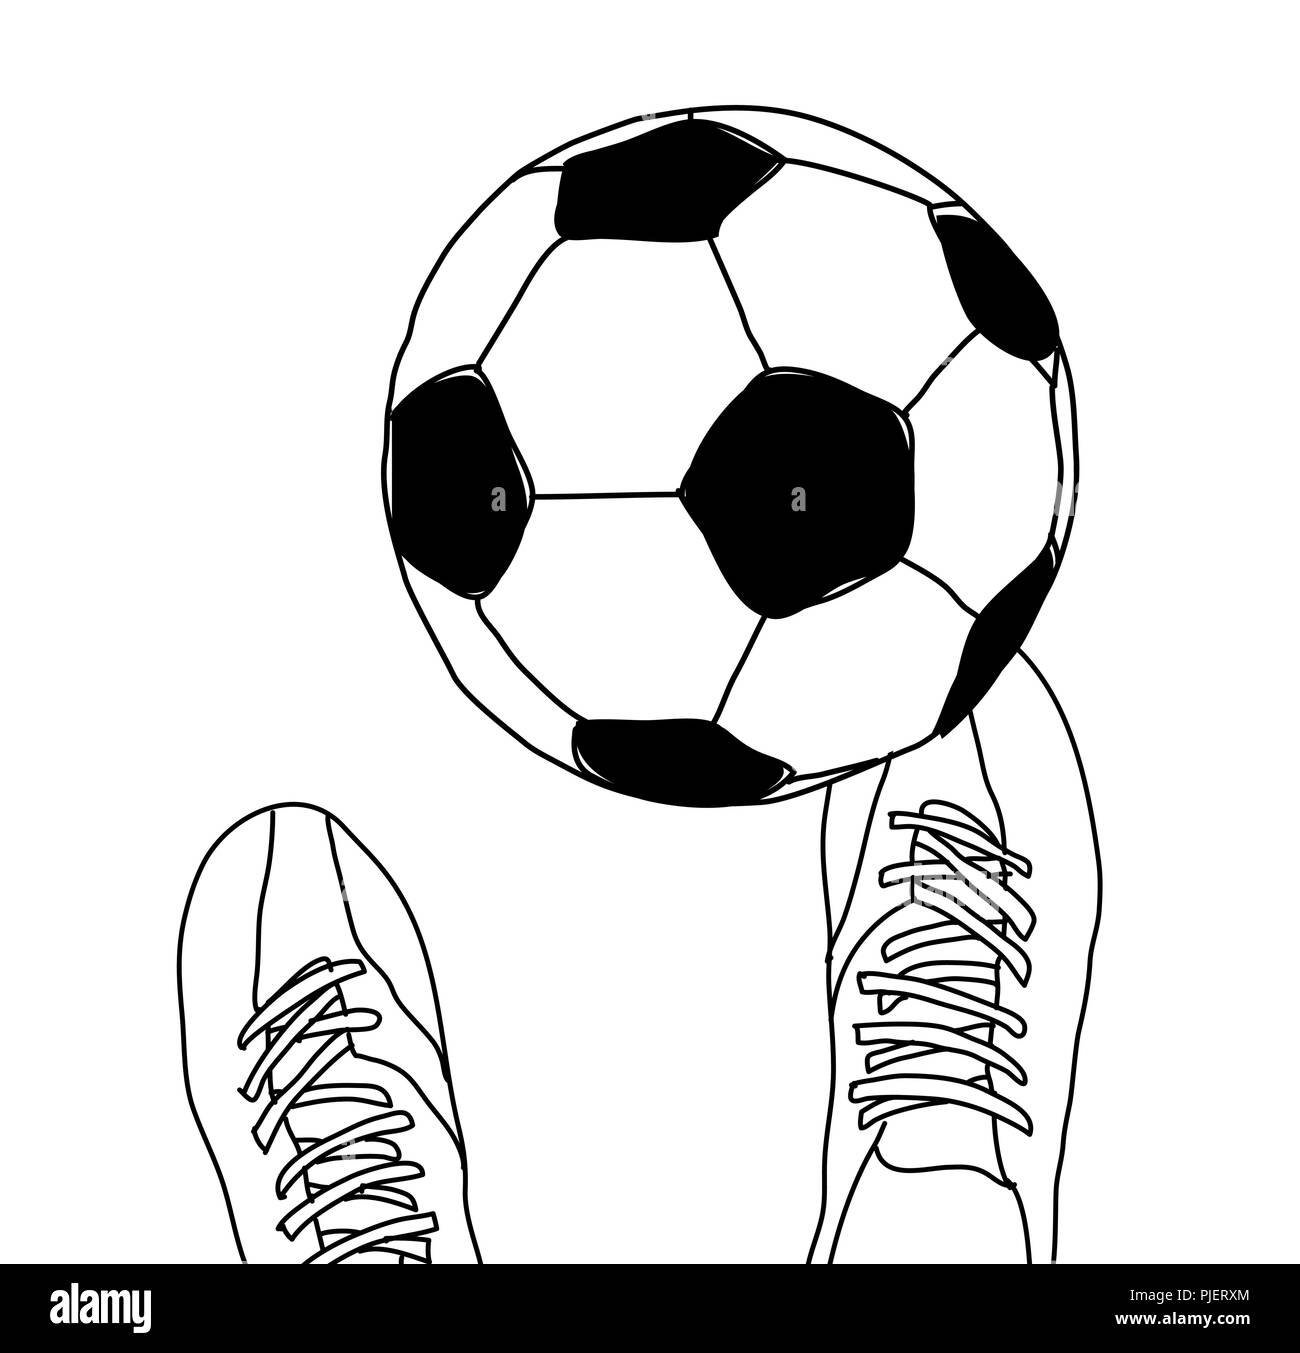 Football player and soccer ball top view black and white - Stock Vector